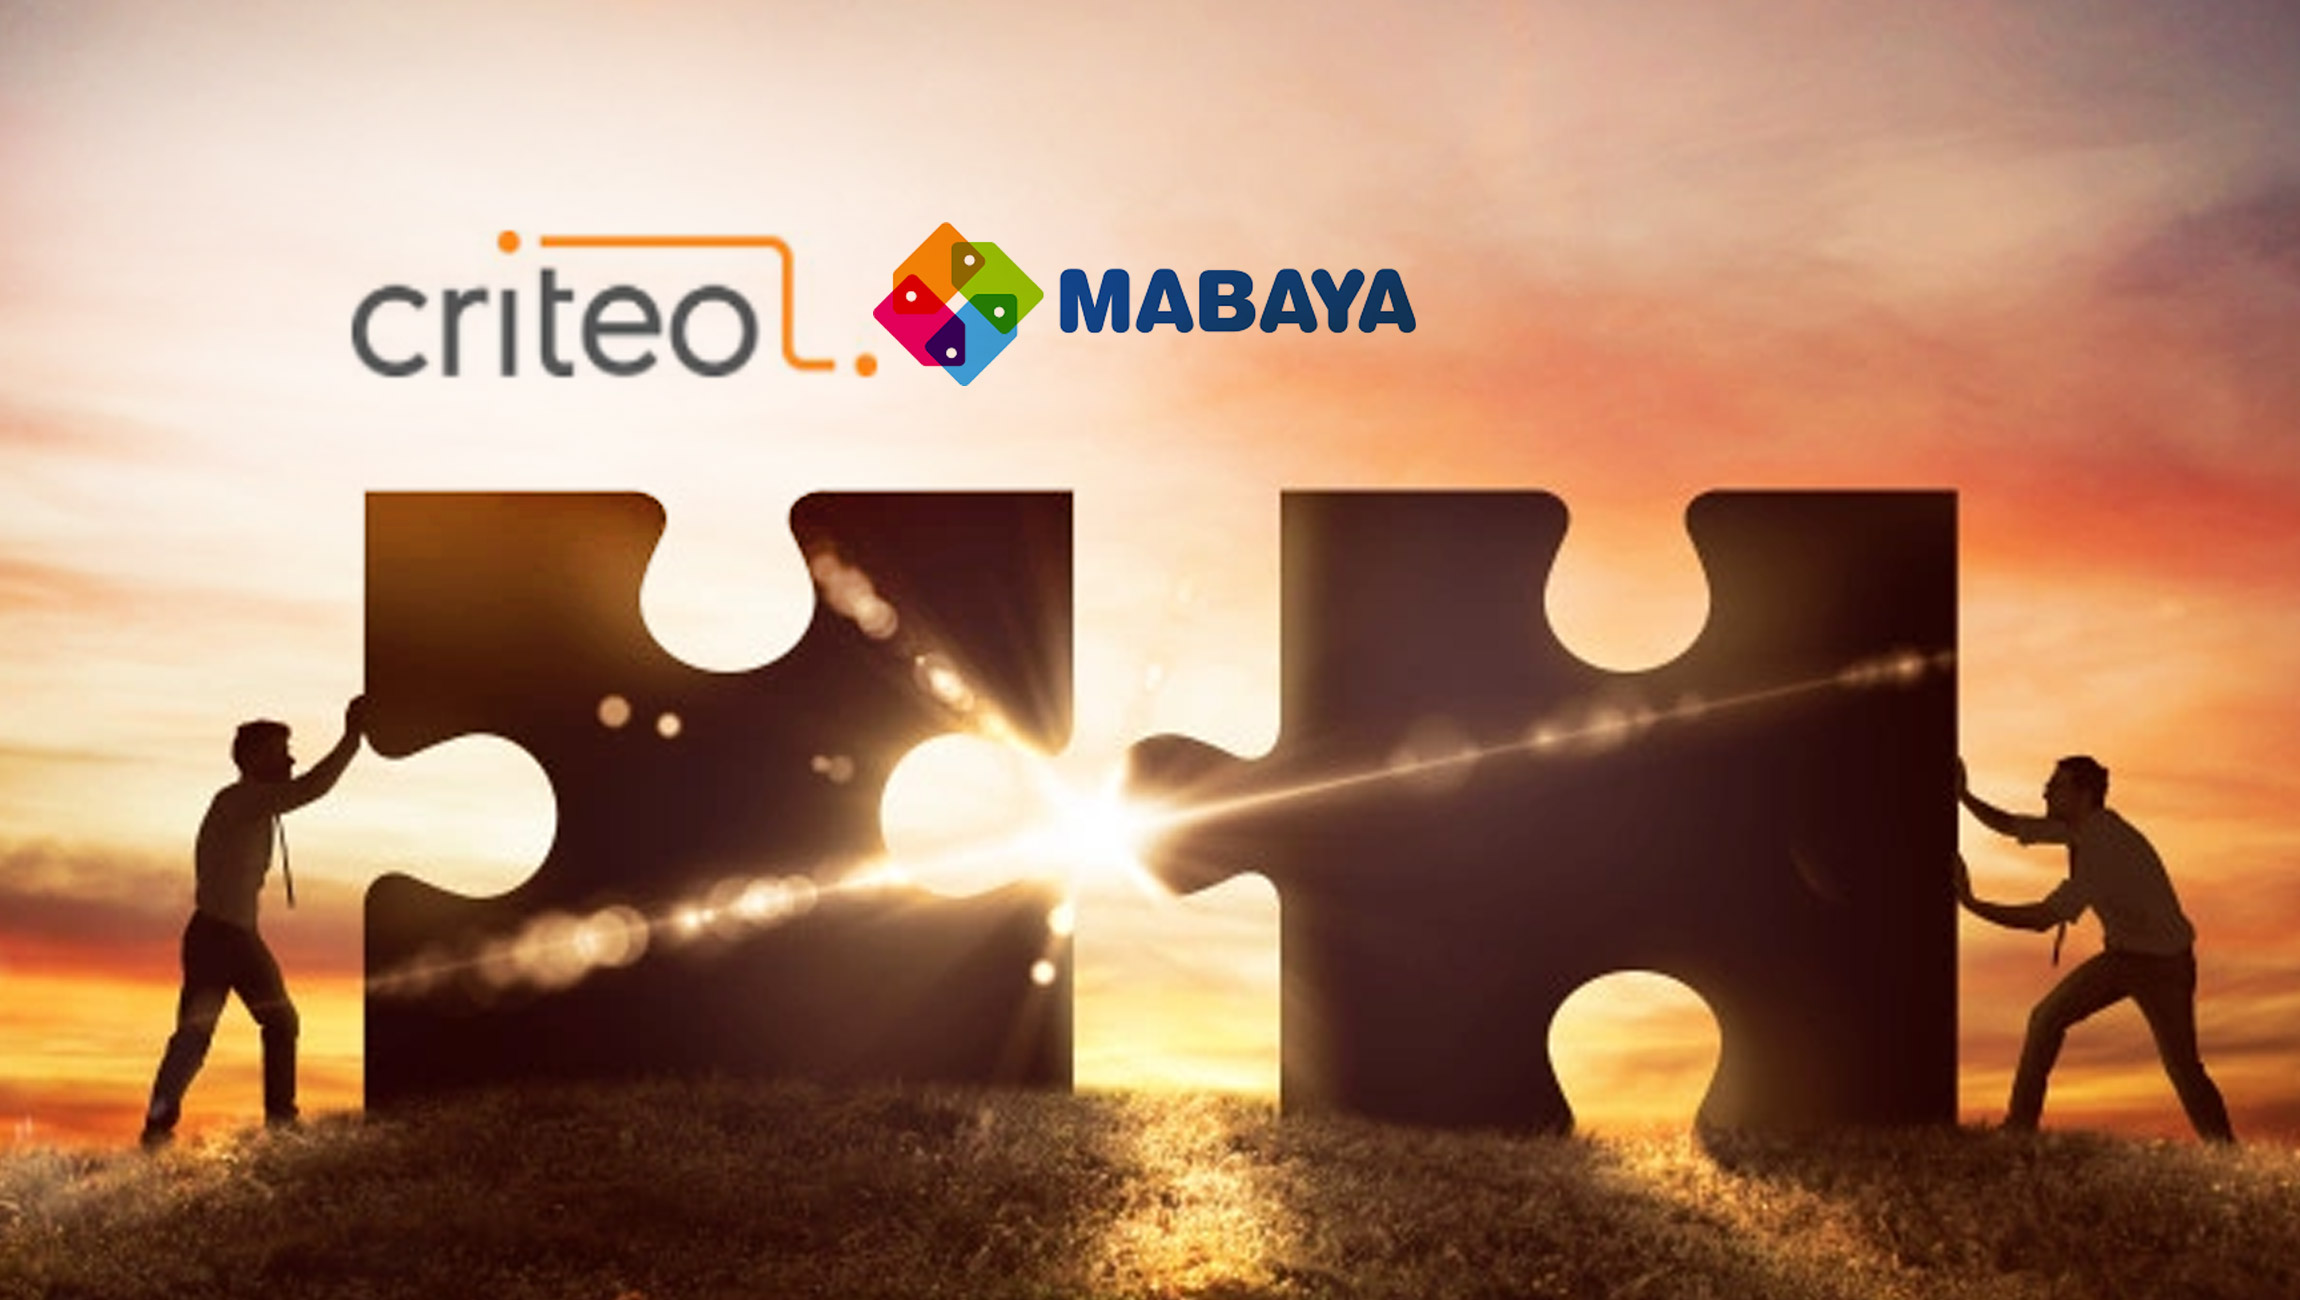 Criteo Acquires Mabaya, Expanding its Retail Media Solutions for Online Marketplaces 1